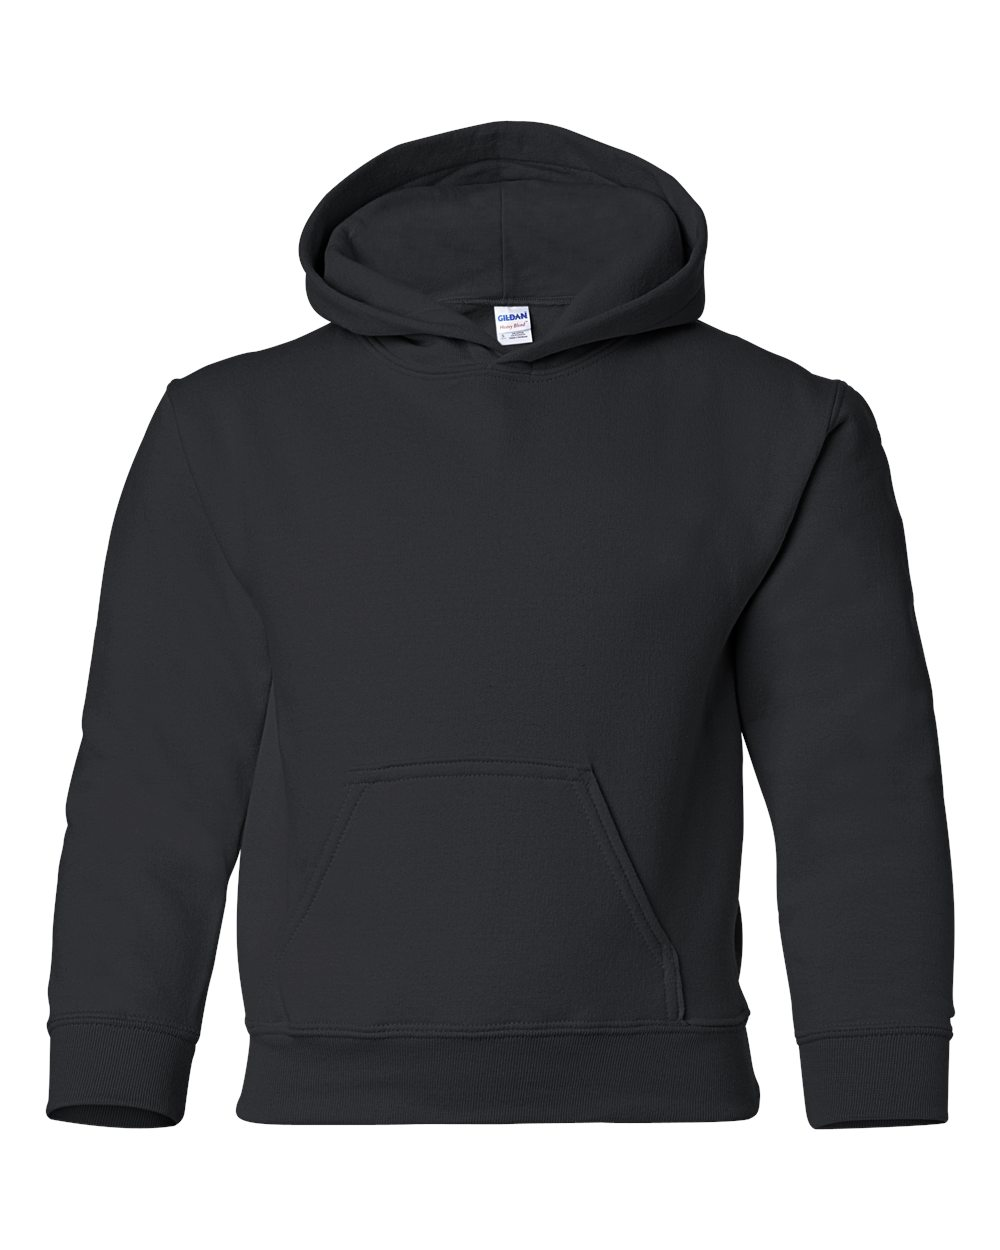 Picture of Gildan Youth Hooded Sweatshirt